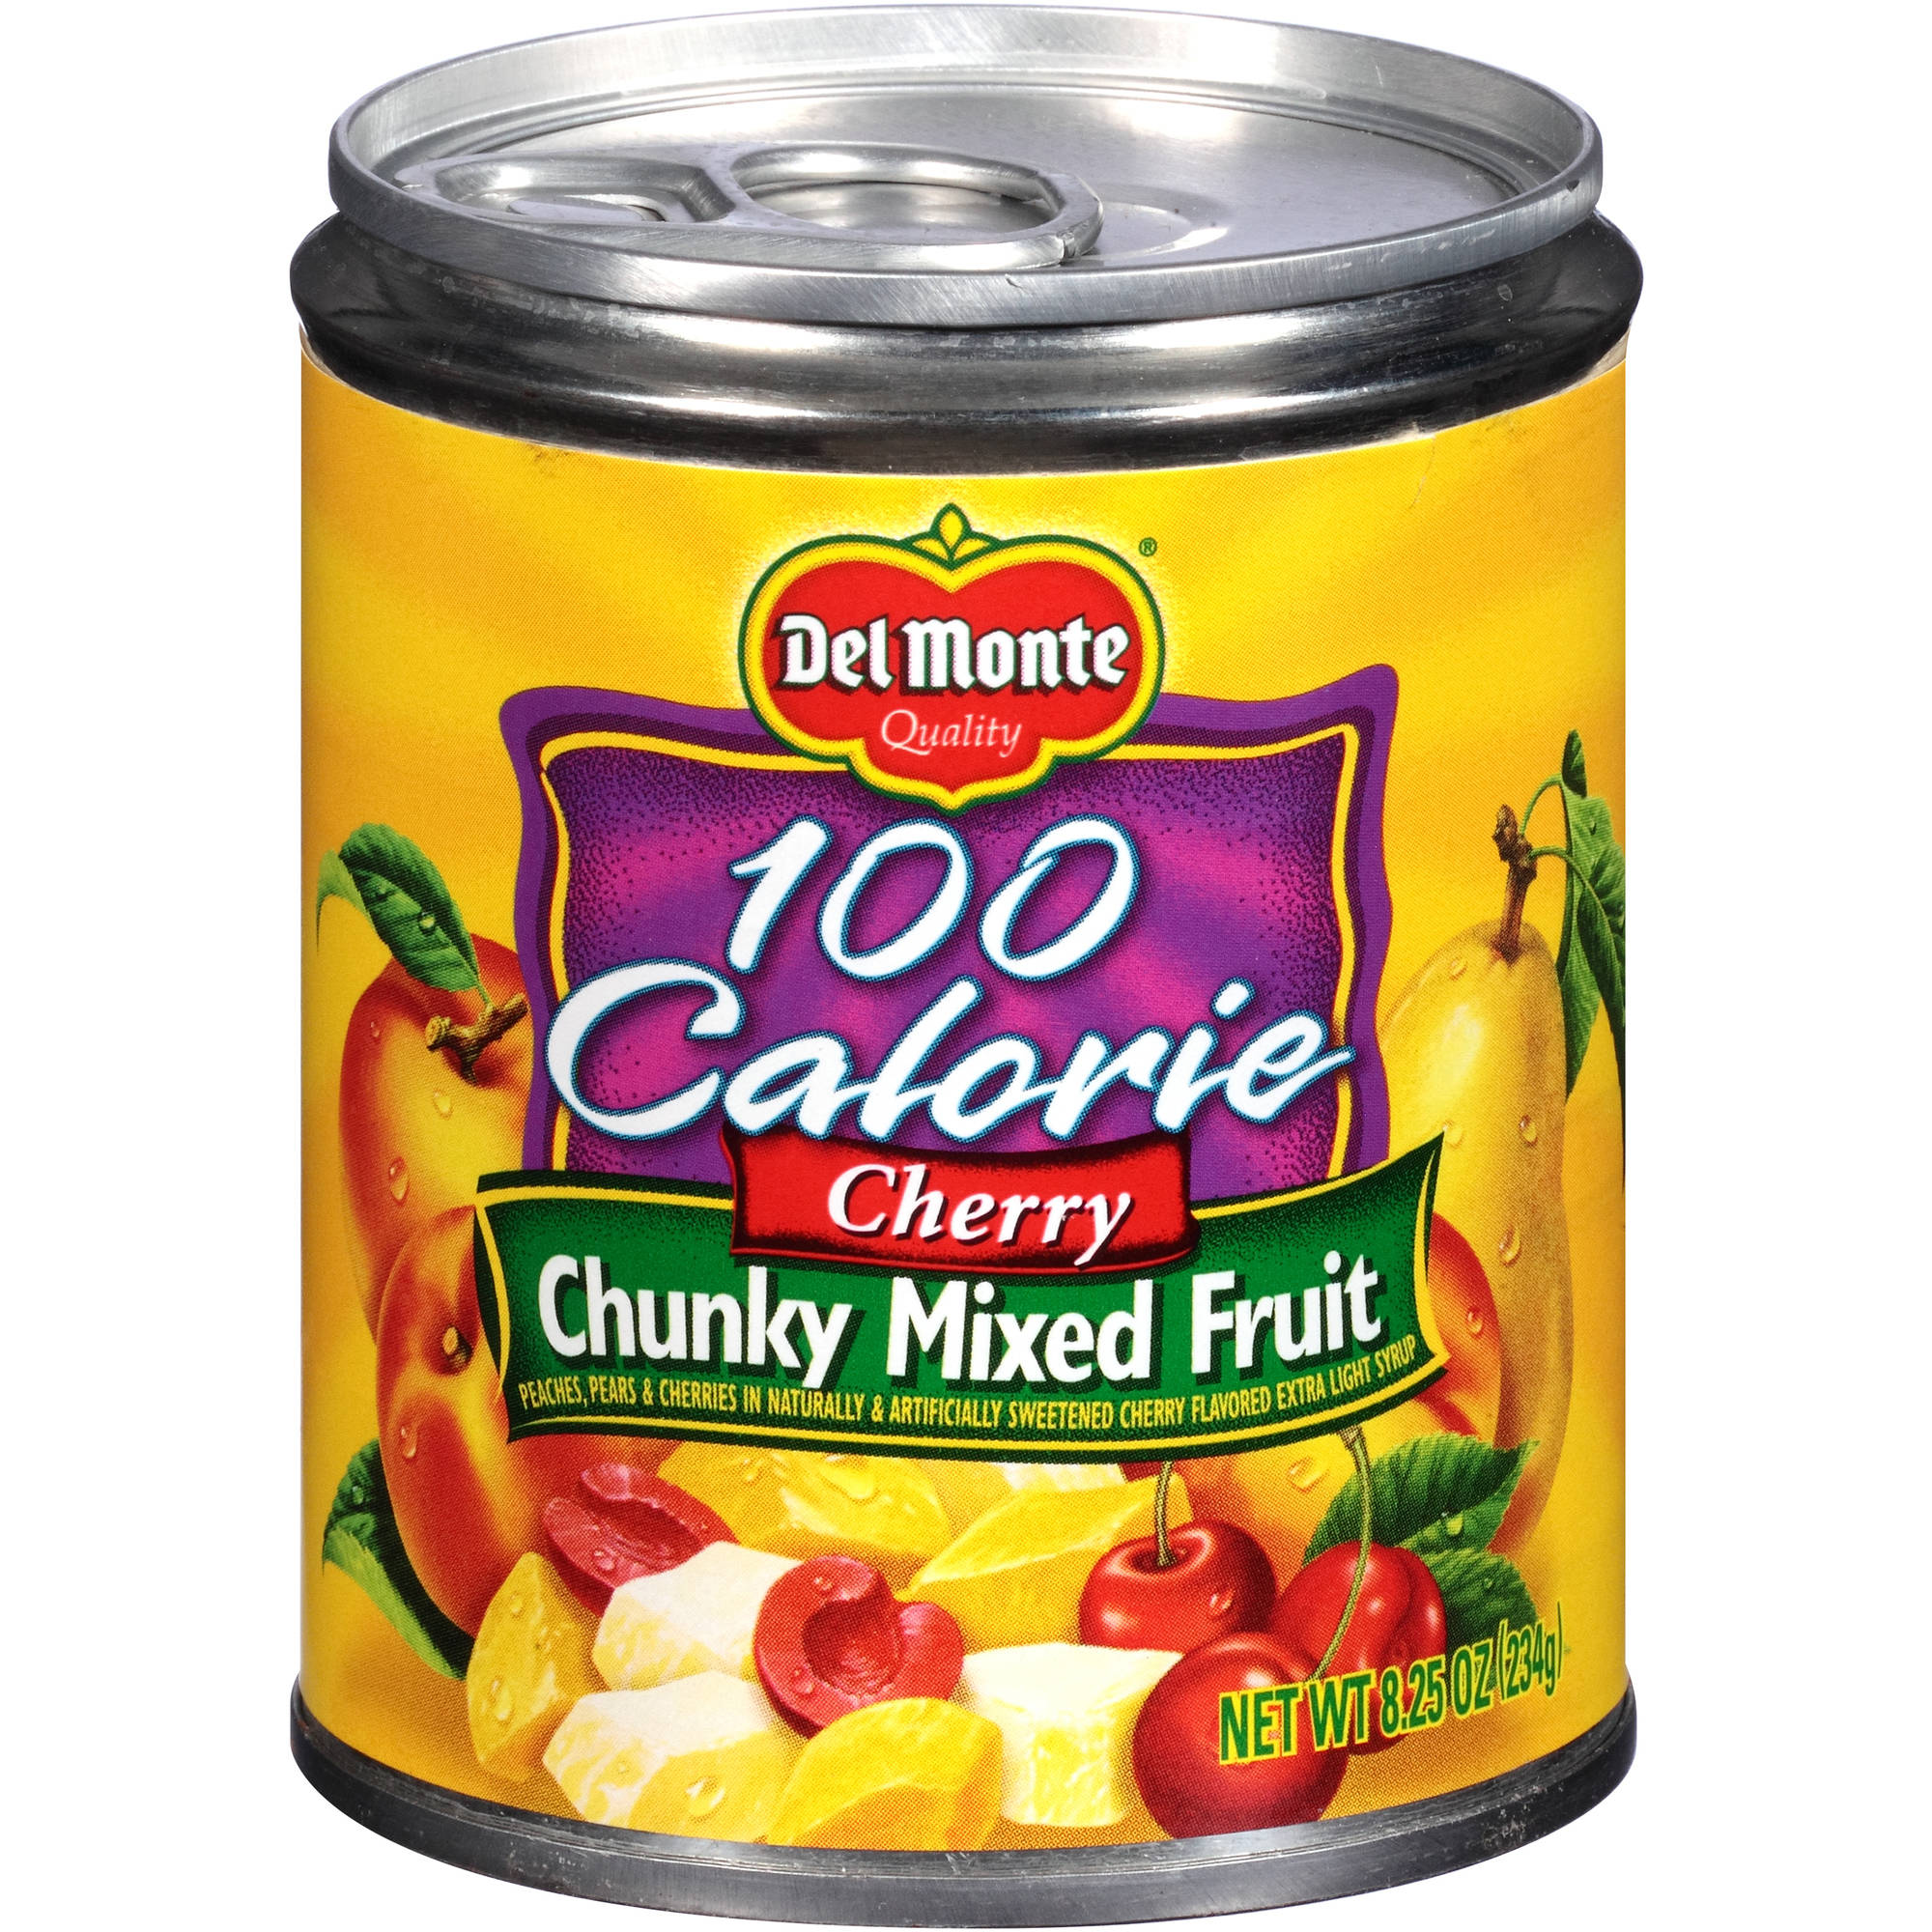 Del Monte 100 Calorie Cherry Chunky Mixed Fruit 825 oz